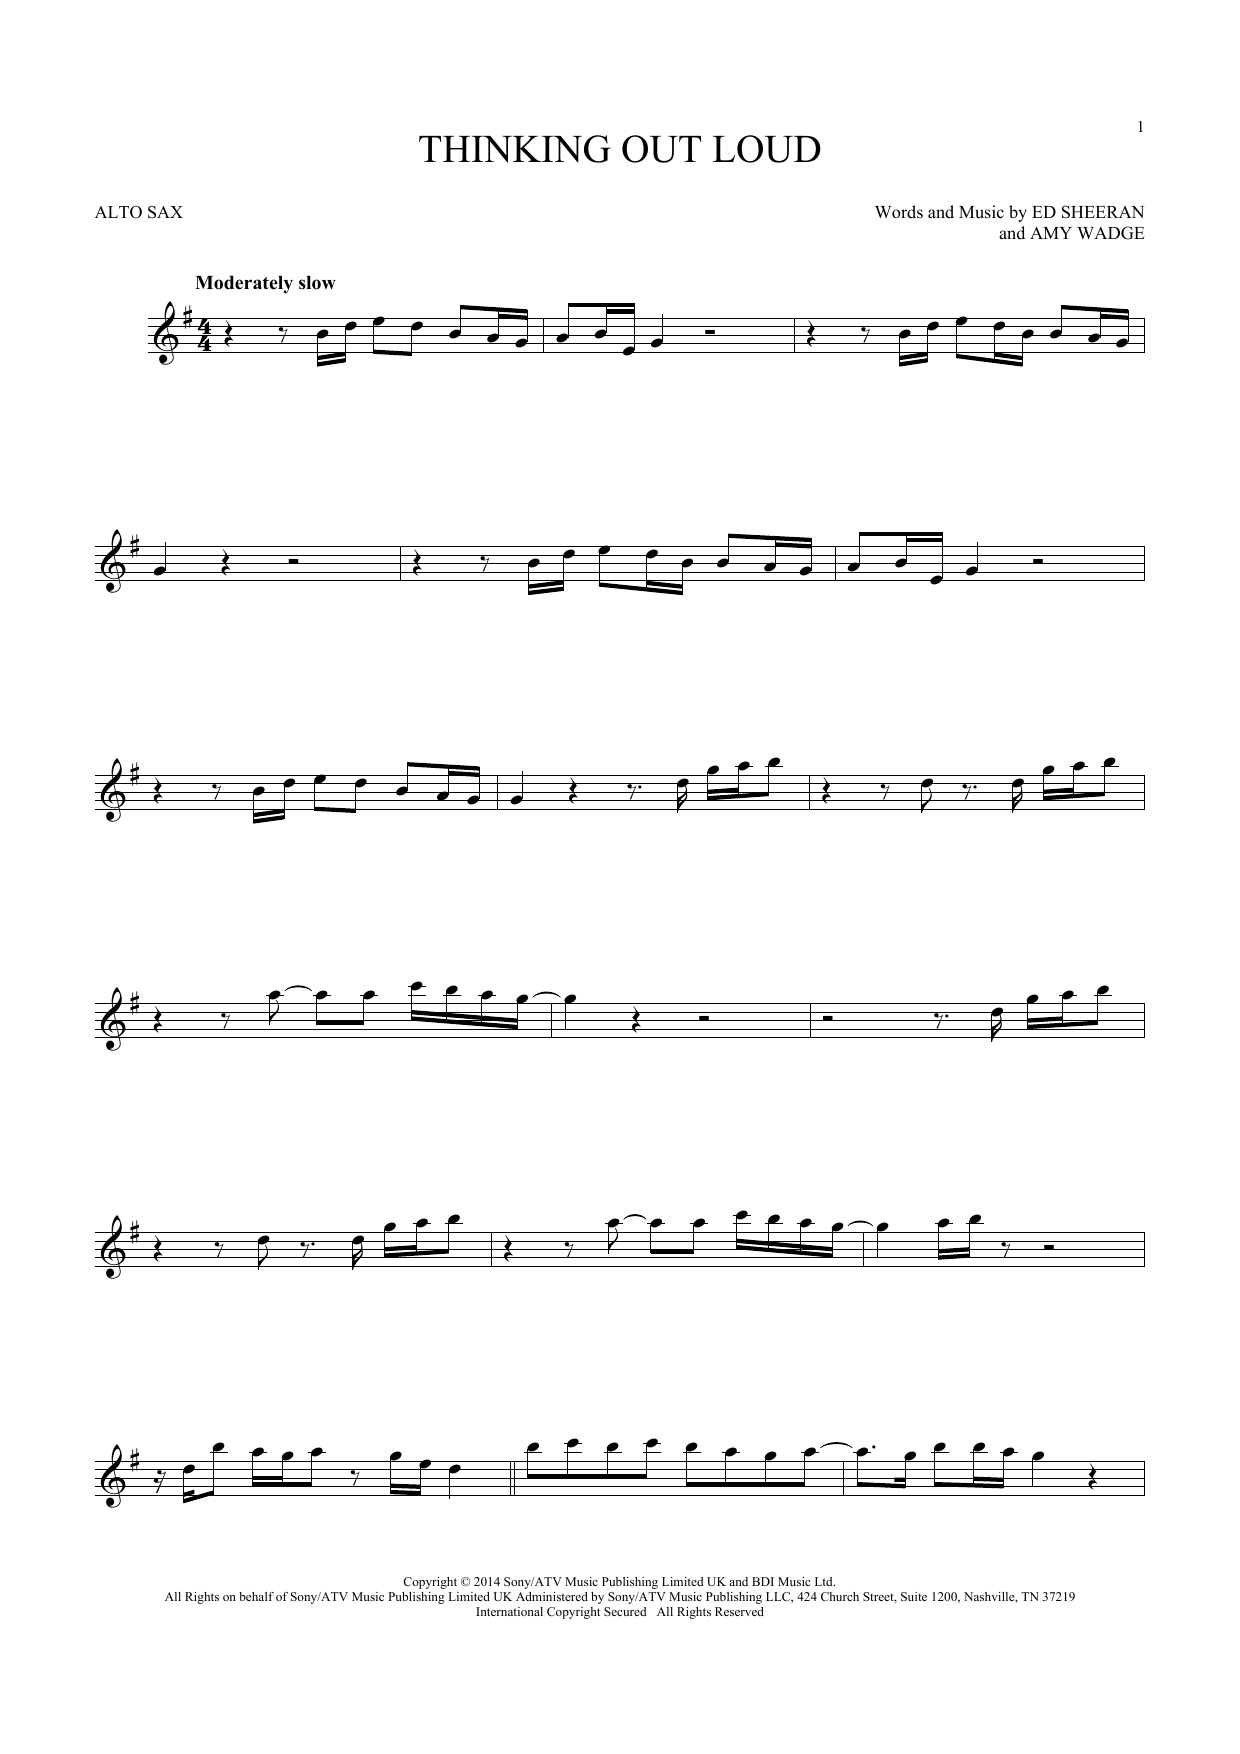 Thinking Out Loud (Alto Sax Solo) - Print Sheet Music Now